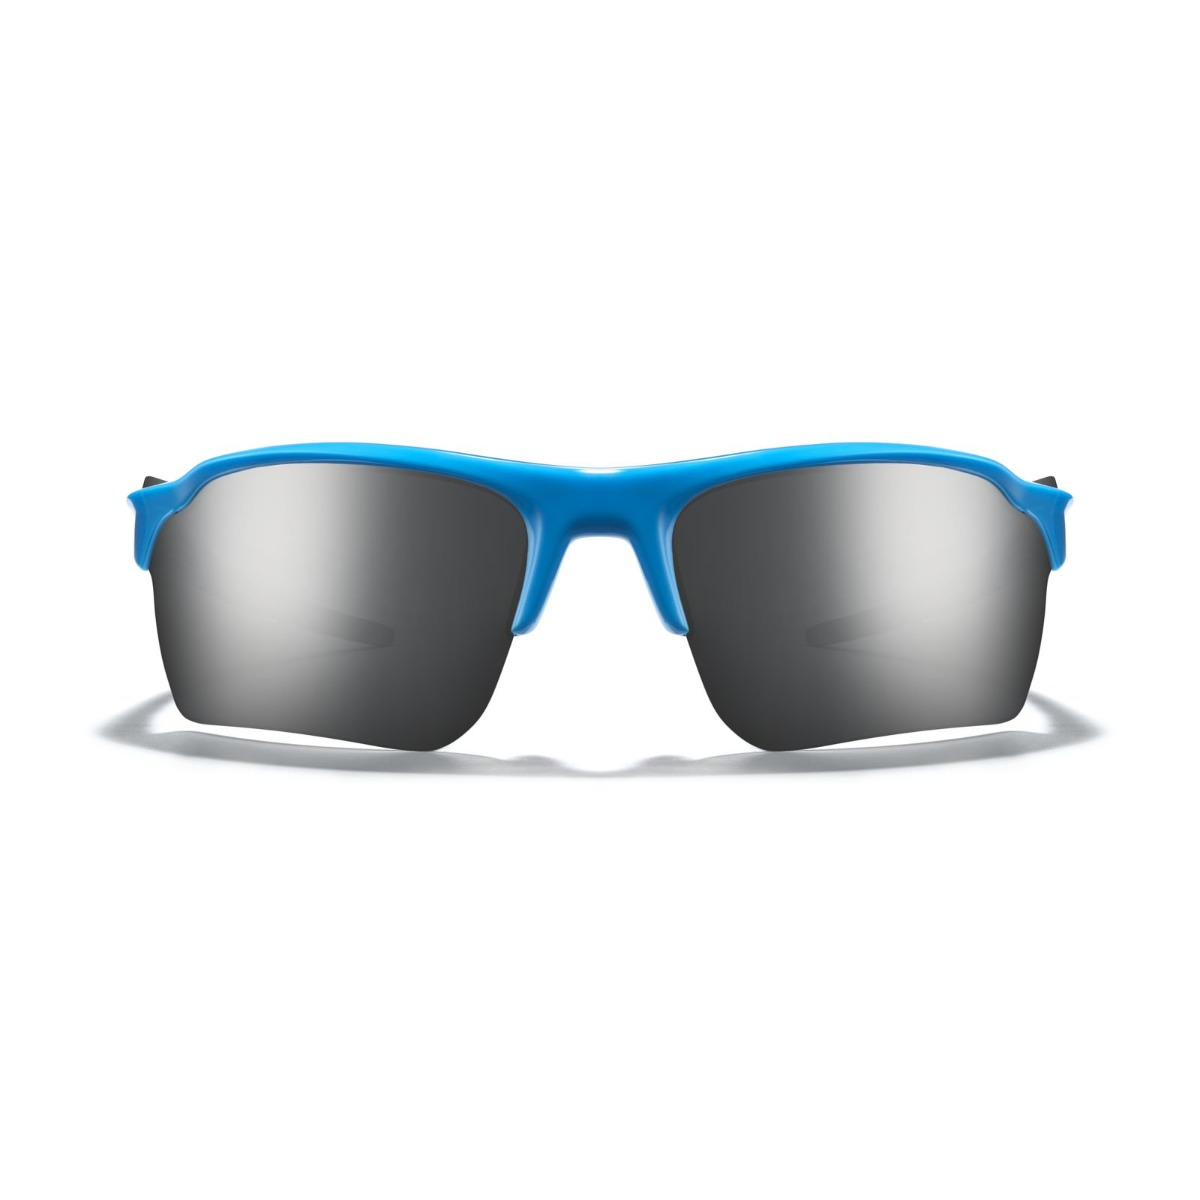 IRONMAN ROKA TL-1 SERIES PERFORMANCE SUNGLASSES